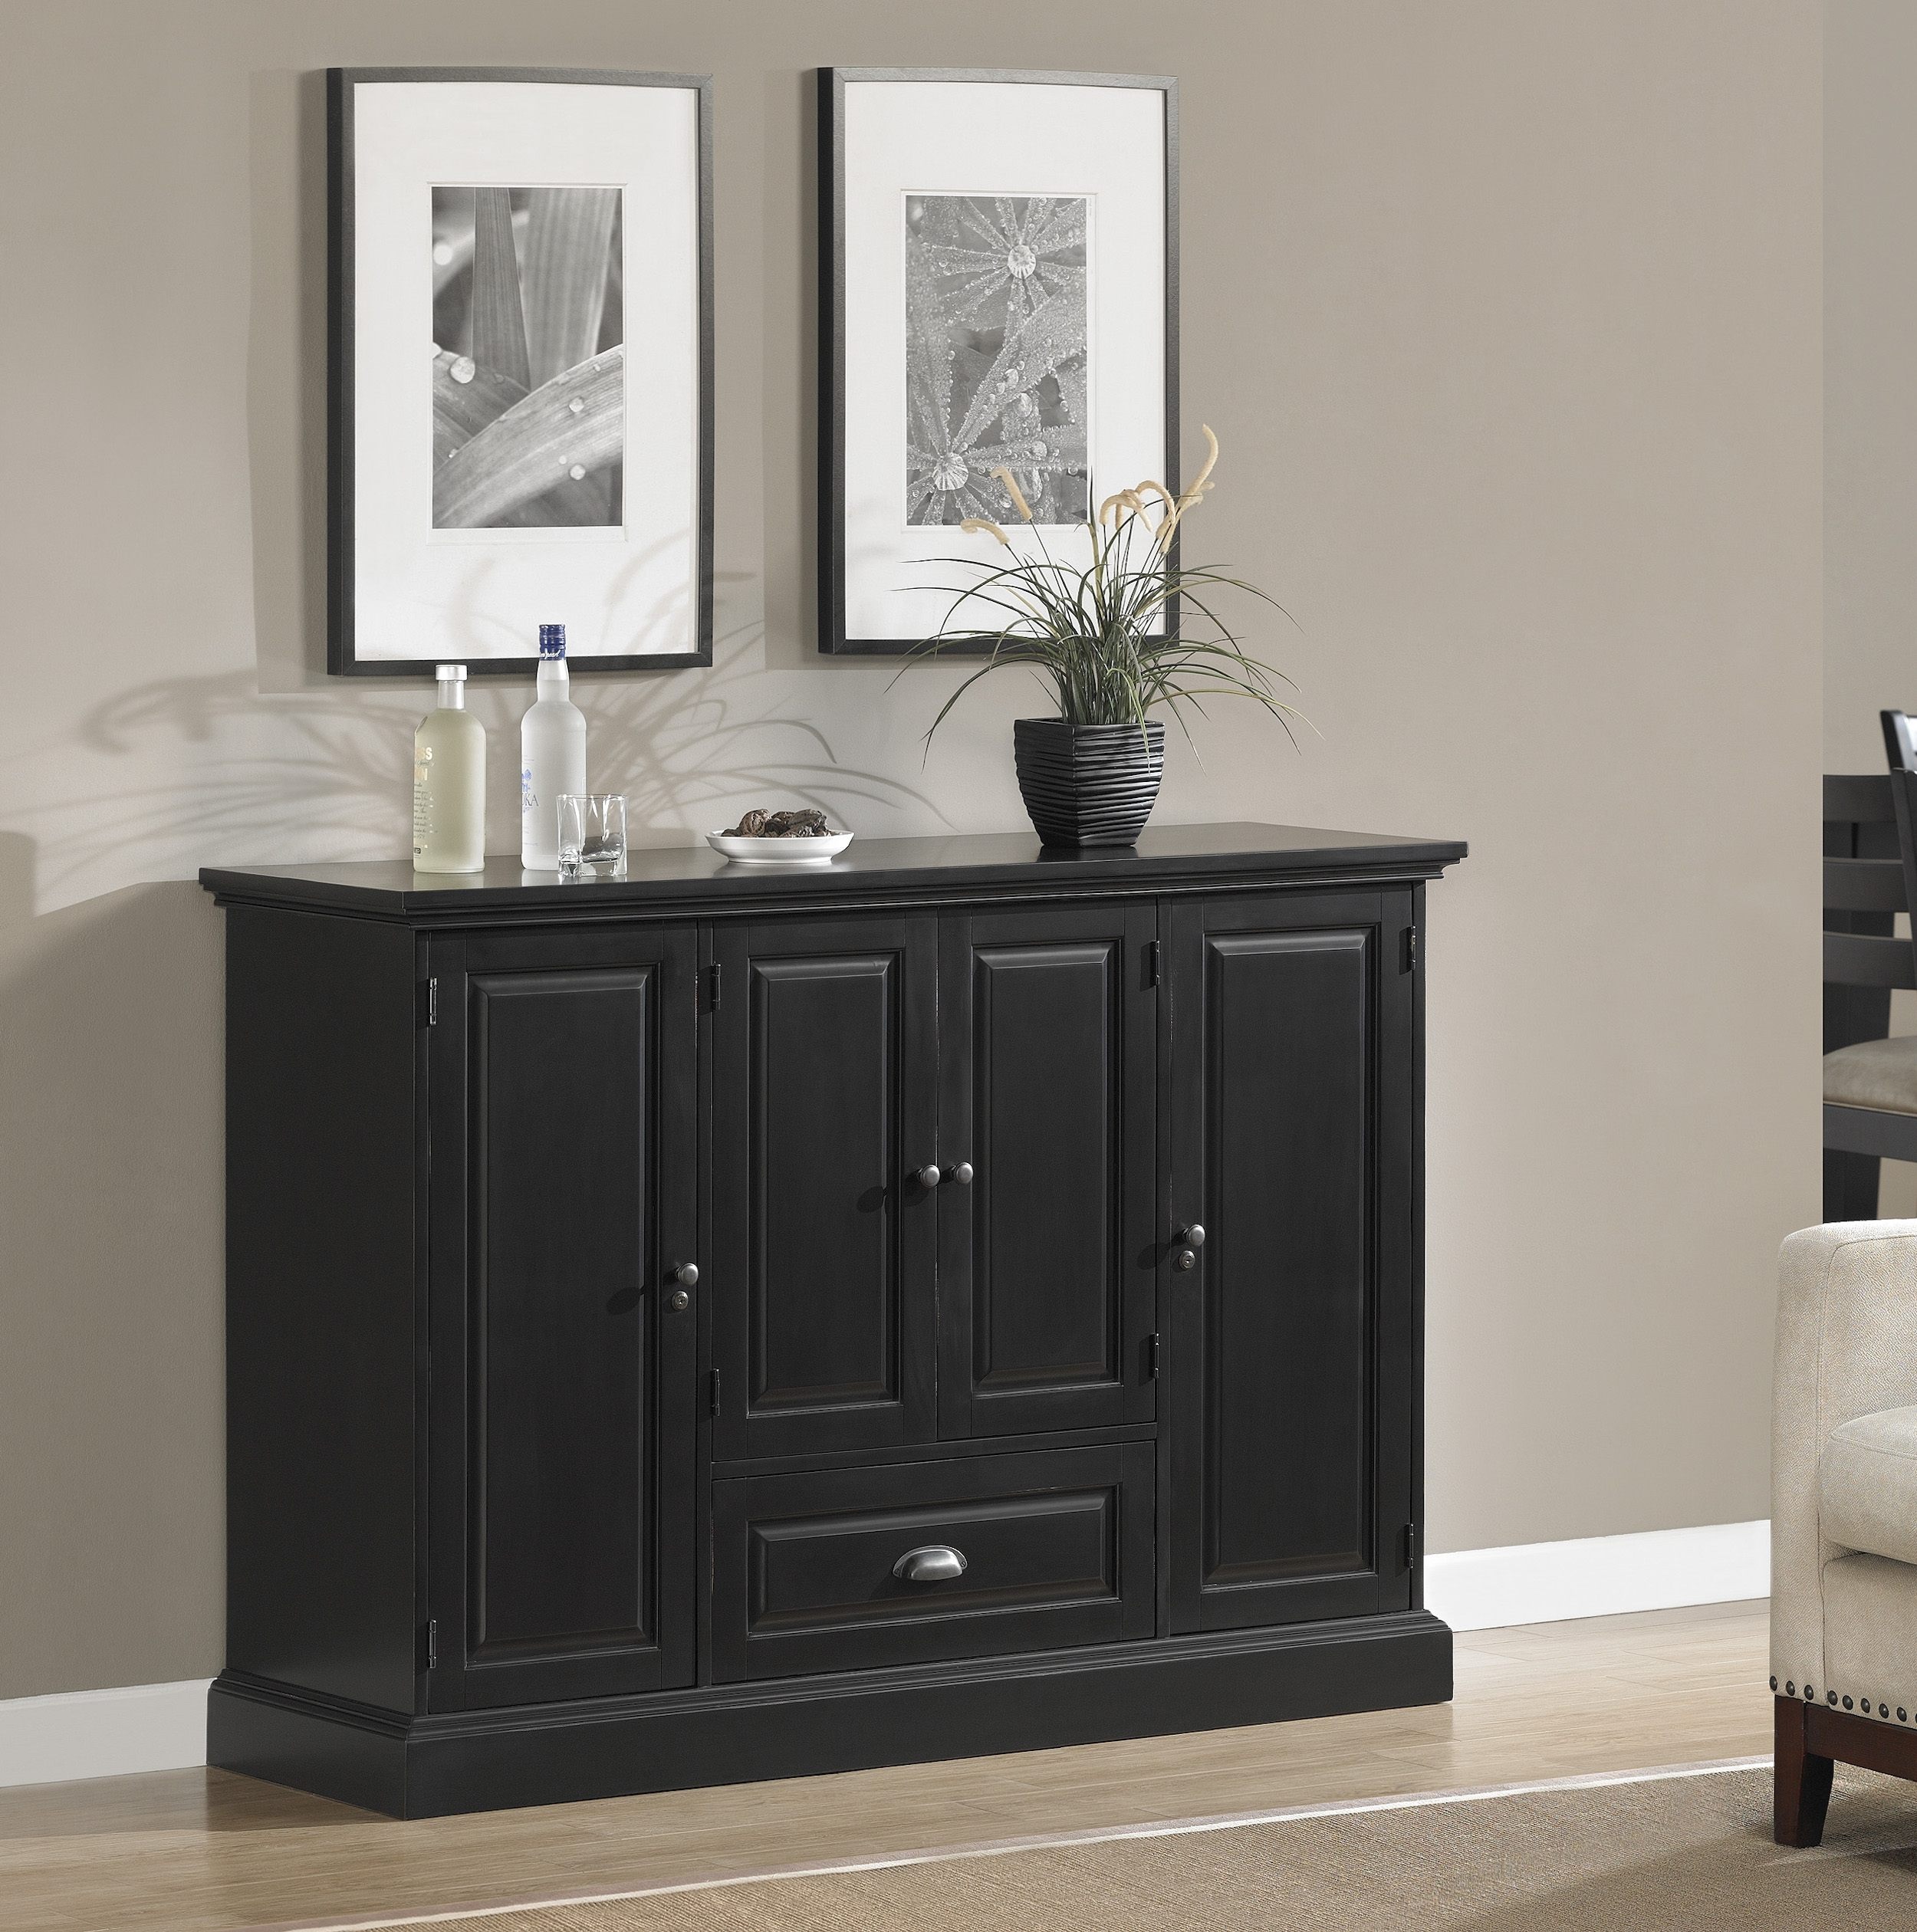 Carlotta-Antique Black | American Heritage Billiards with Jaxon Grey Sideboards (Image 5 of 30)